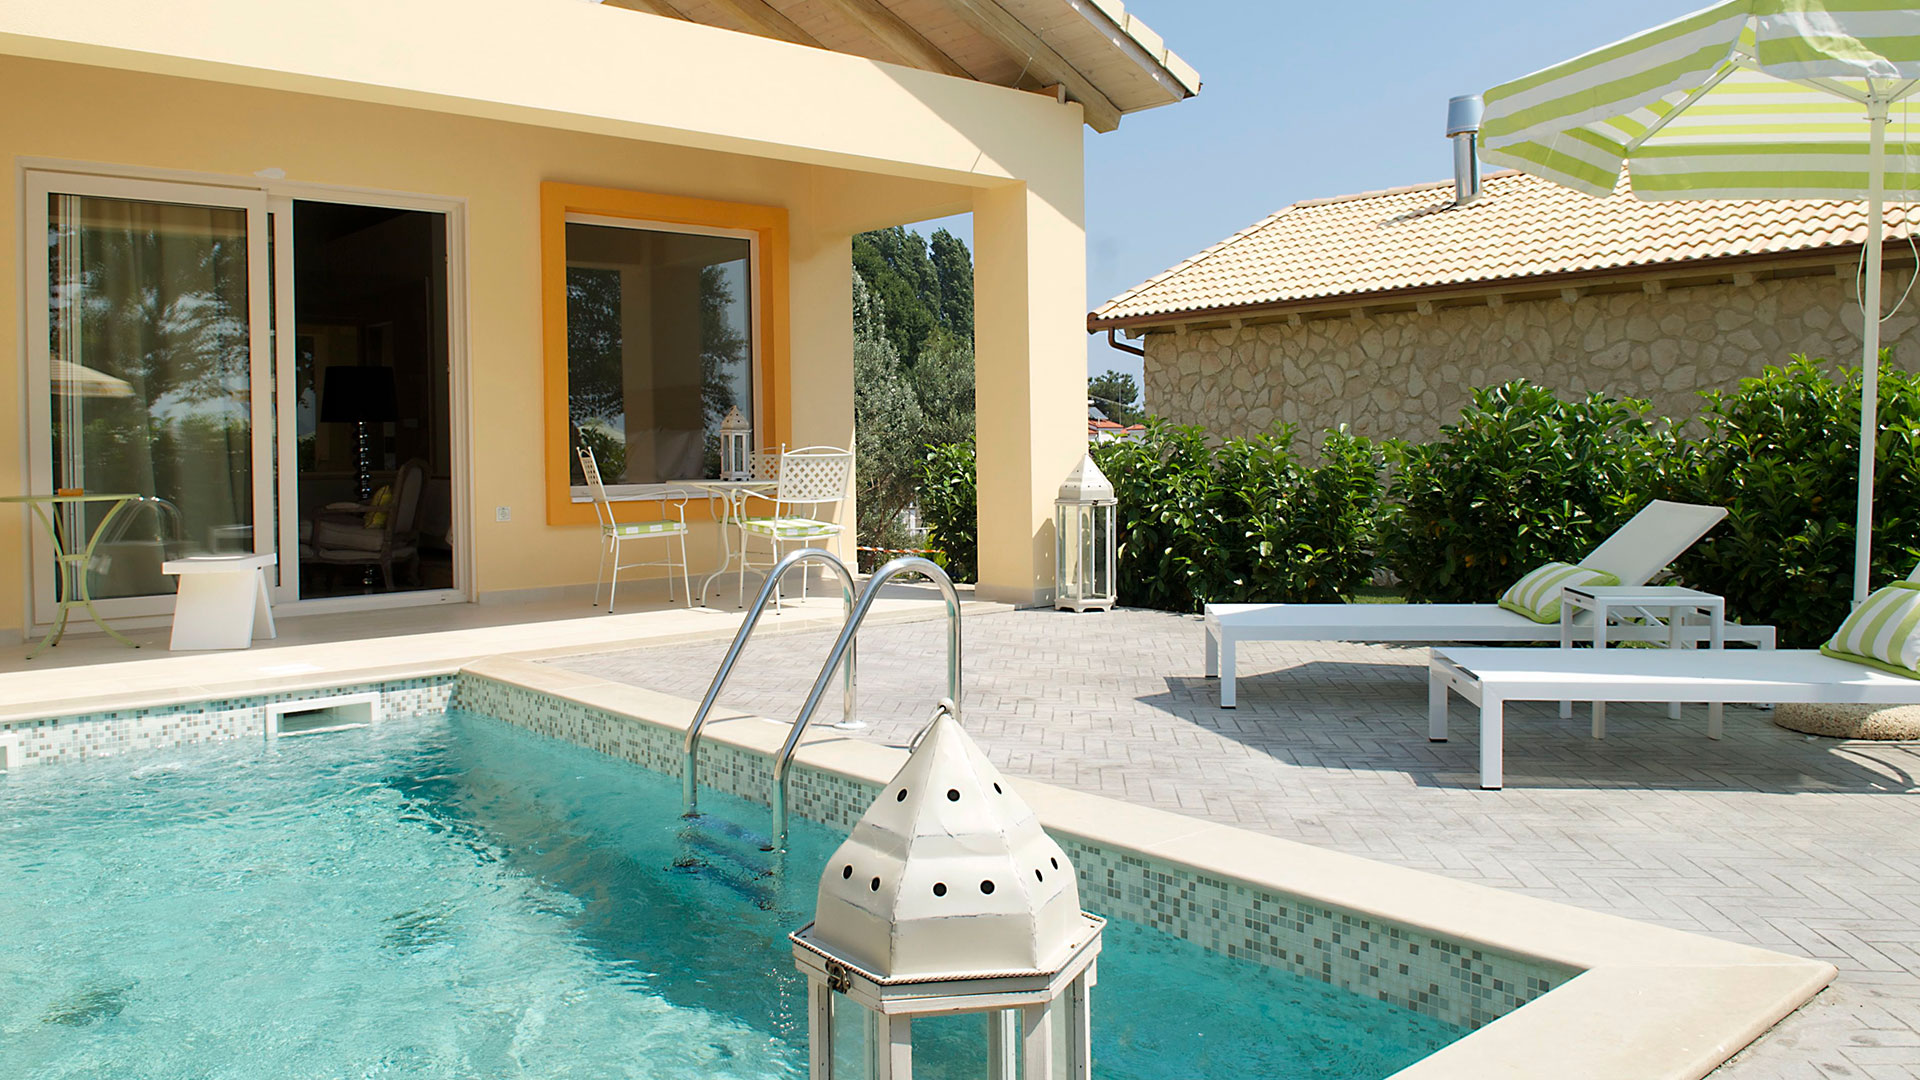 VIP Villa ''King of Olympus Package'' designed by TRAVEL CHANNEL